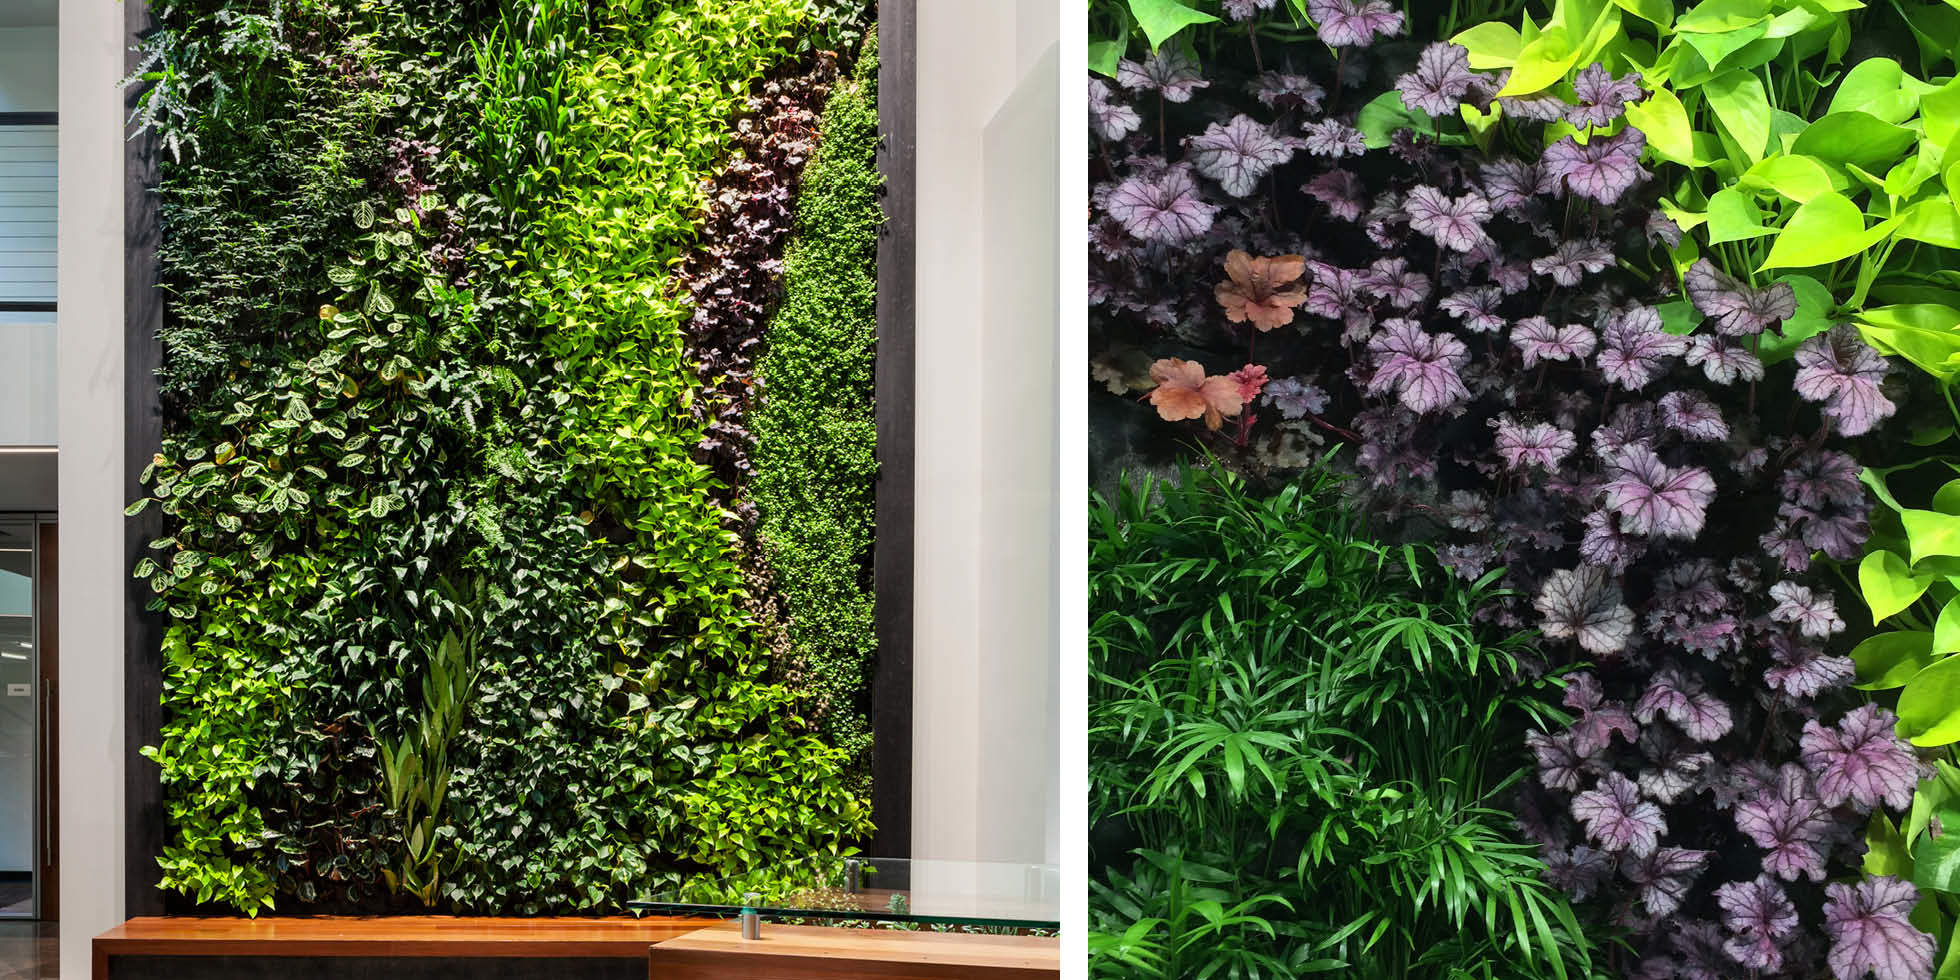 DPR Construction Living Wall by Habitat Horticulture - View 3